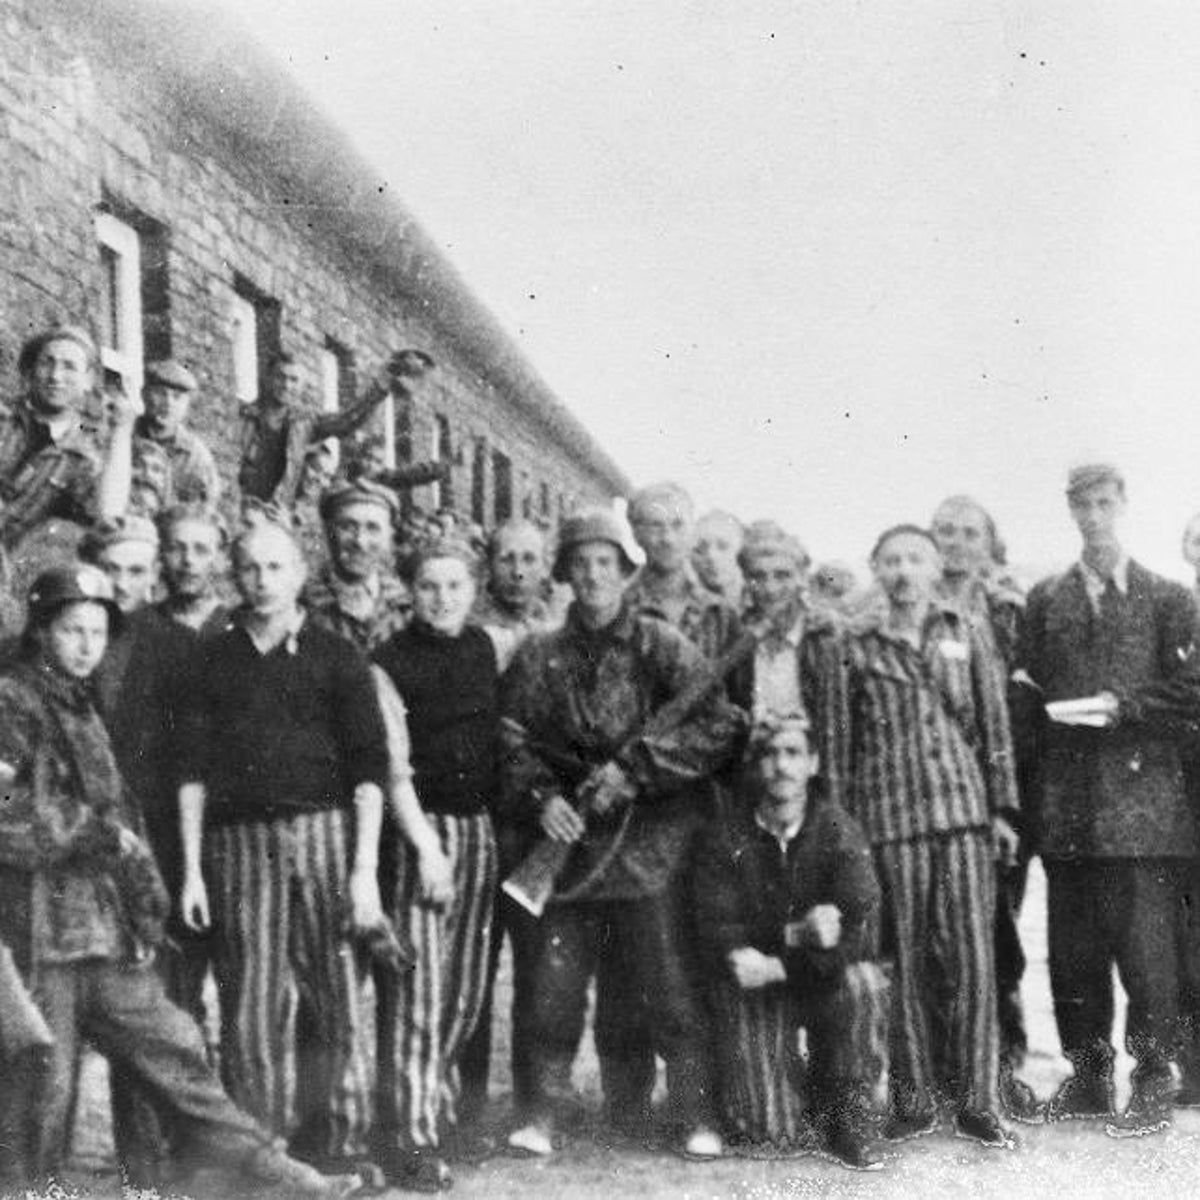 Prisoners in the Warsaw concentration camp.